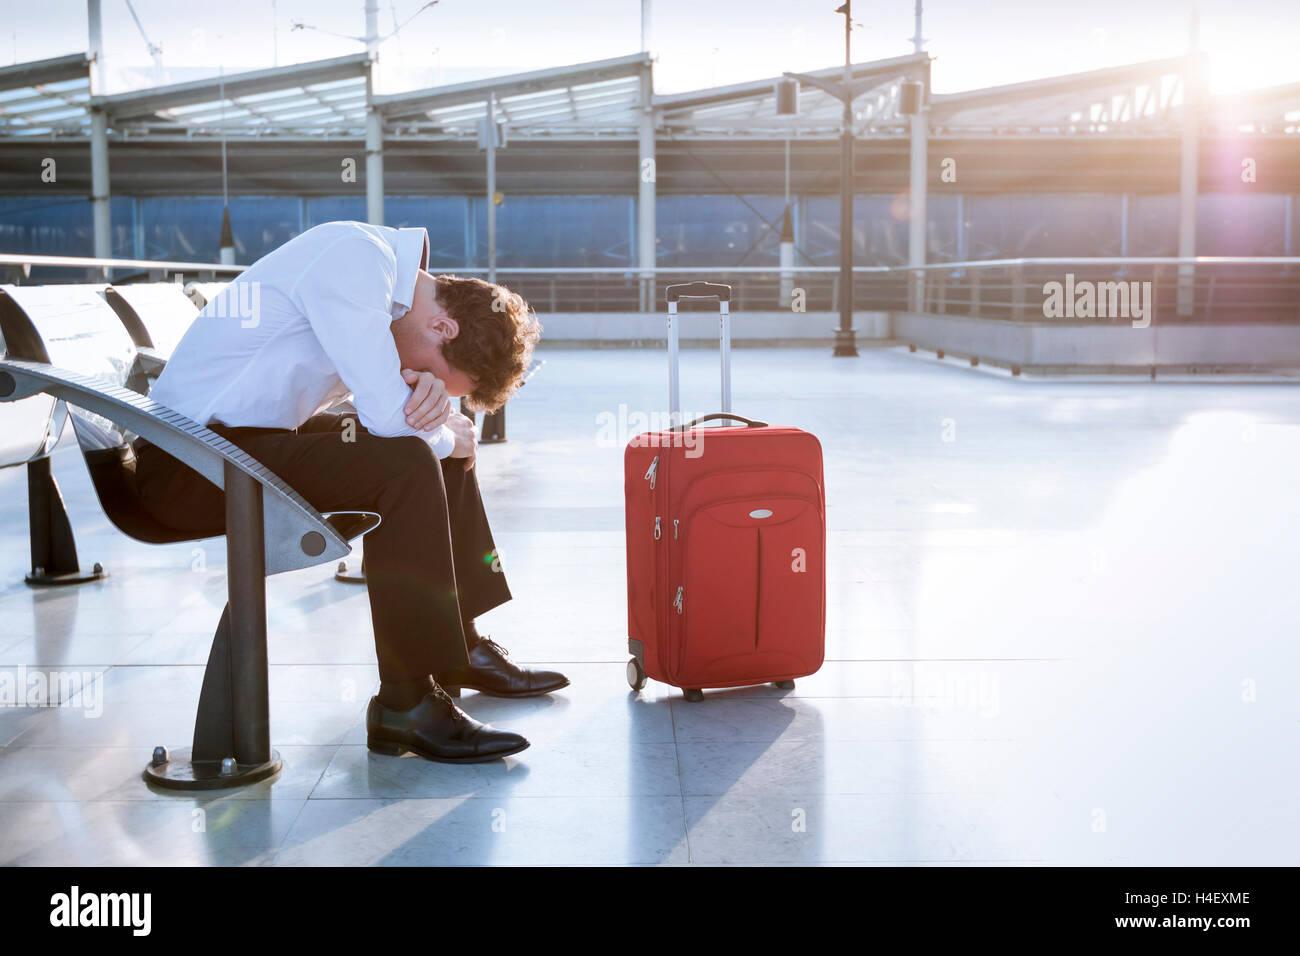 Depressed traveler waiting at airport after flights delays and cancellations - Stock Image